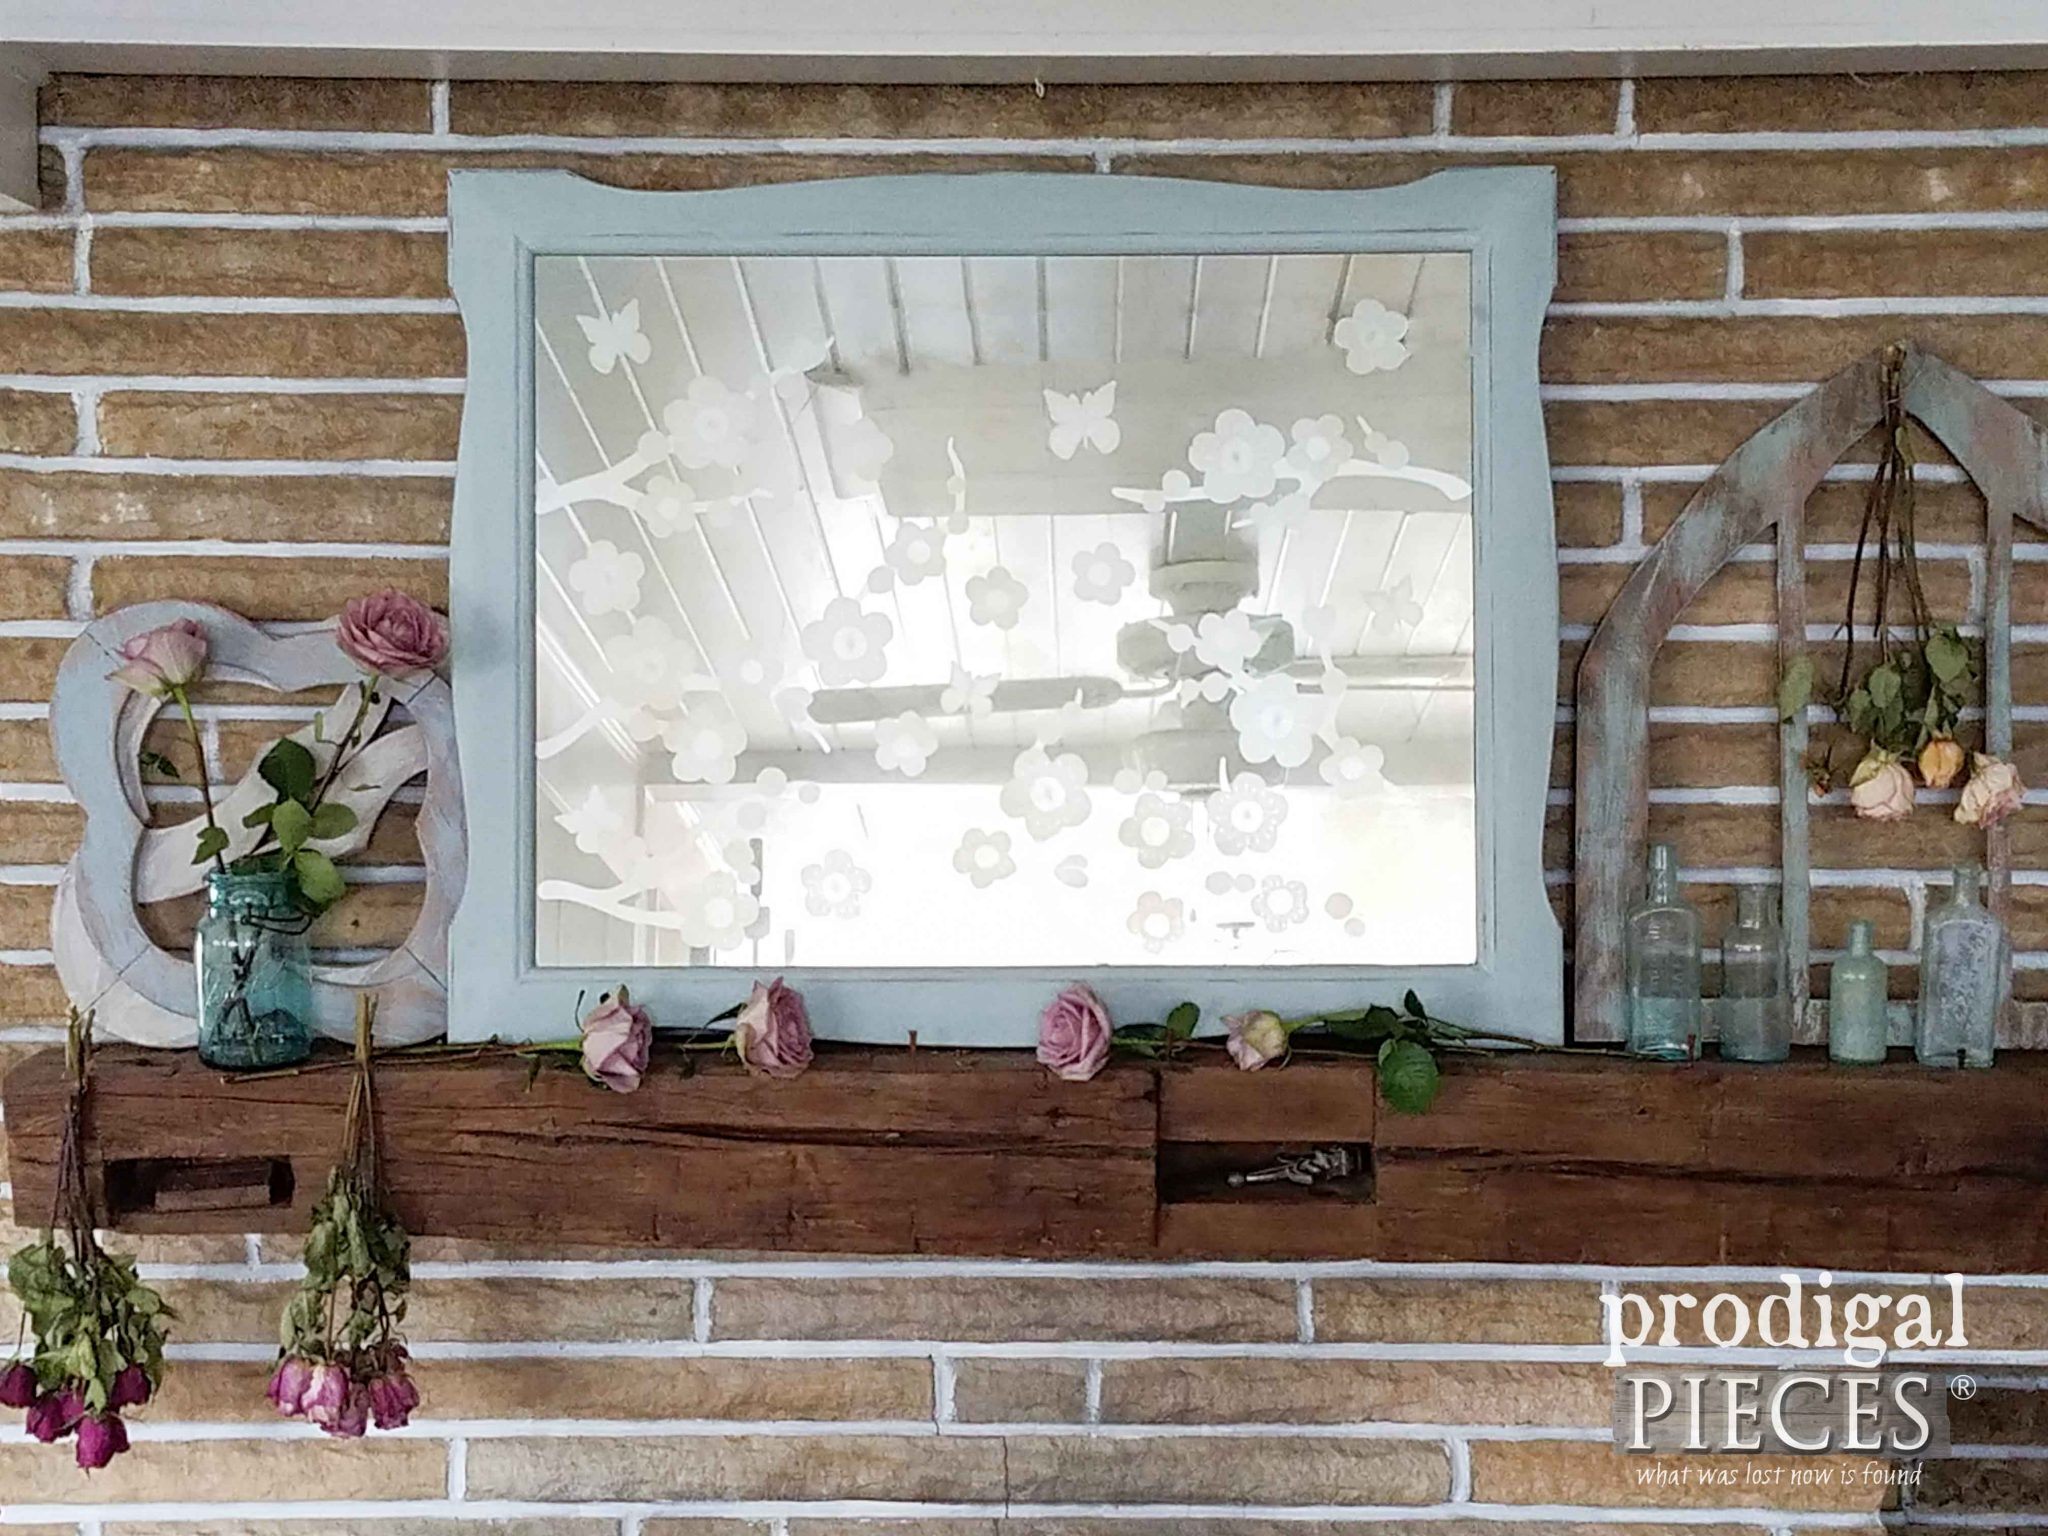 Old Dresser Mirror Gets Facelift with Etching. DIY details by Prodigal Pieces | prodigalpieces.com